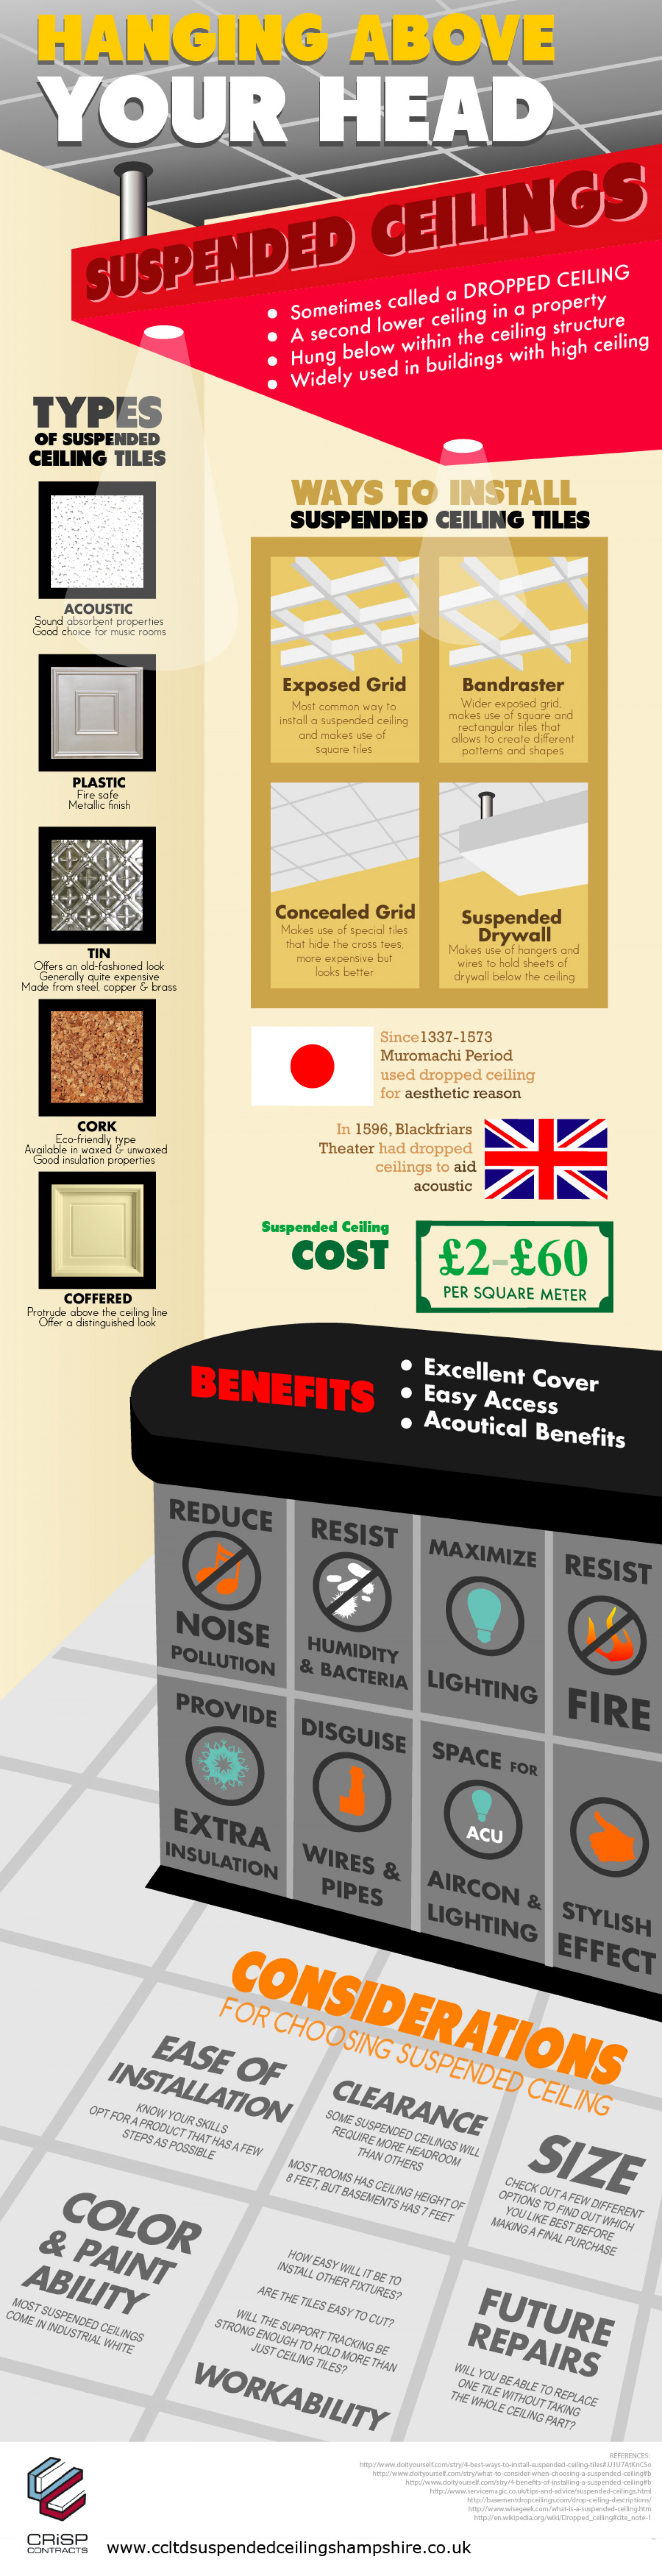 Hanging Above Your Head: Suspended Ceilings Infographic